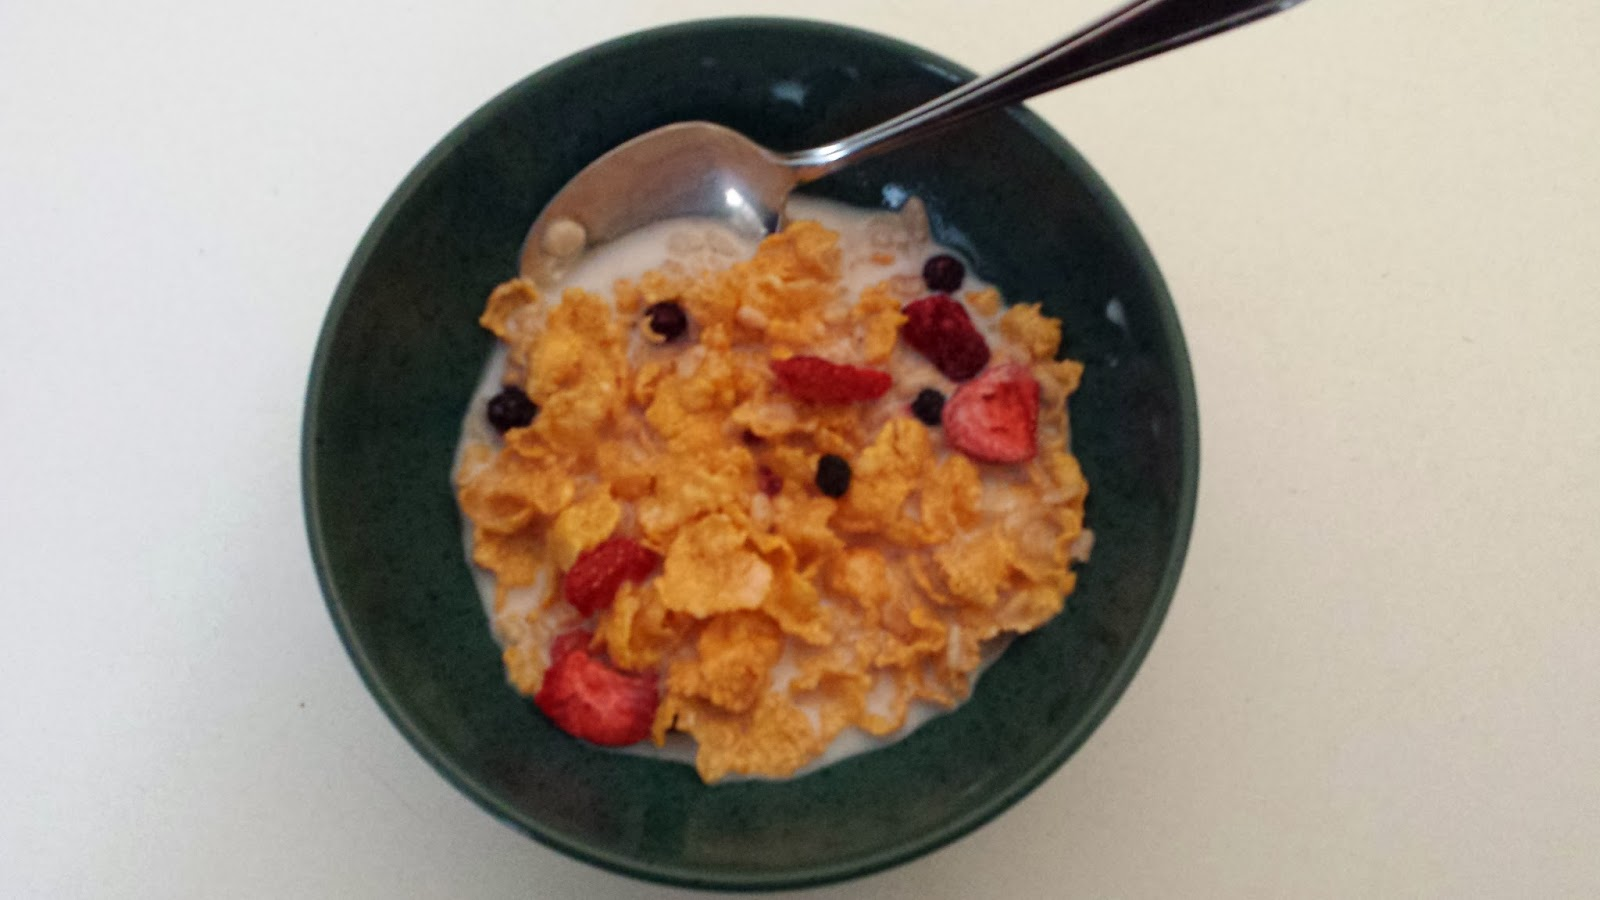 Cathy thinking out loud wildroots tripleberry crisp gluten free i found this cereal to be very tasty and the flakes stayed crisp in milk and did not get soggy after 5 seconds i hate when the flakes get soggy before you ccuart Choice Image